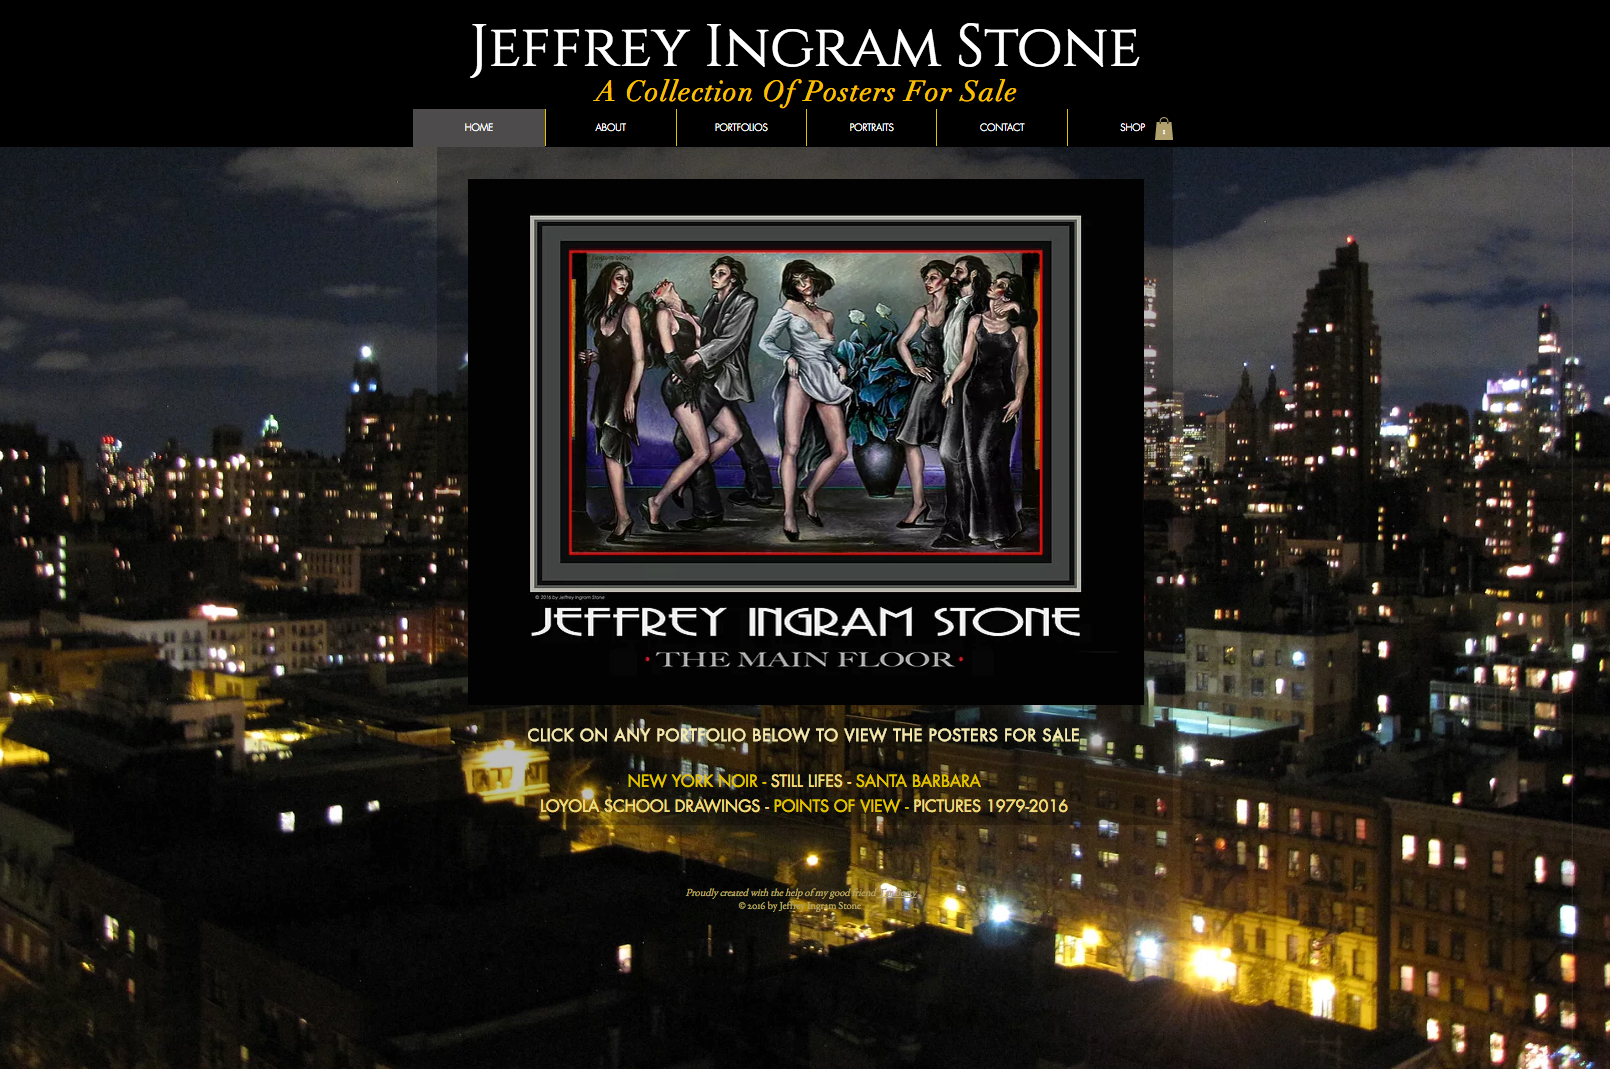 Jeffrey Ingram Stone